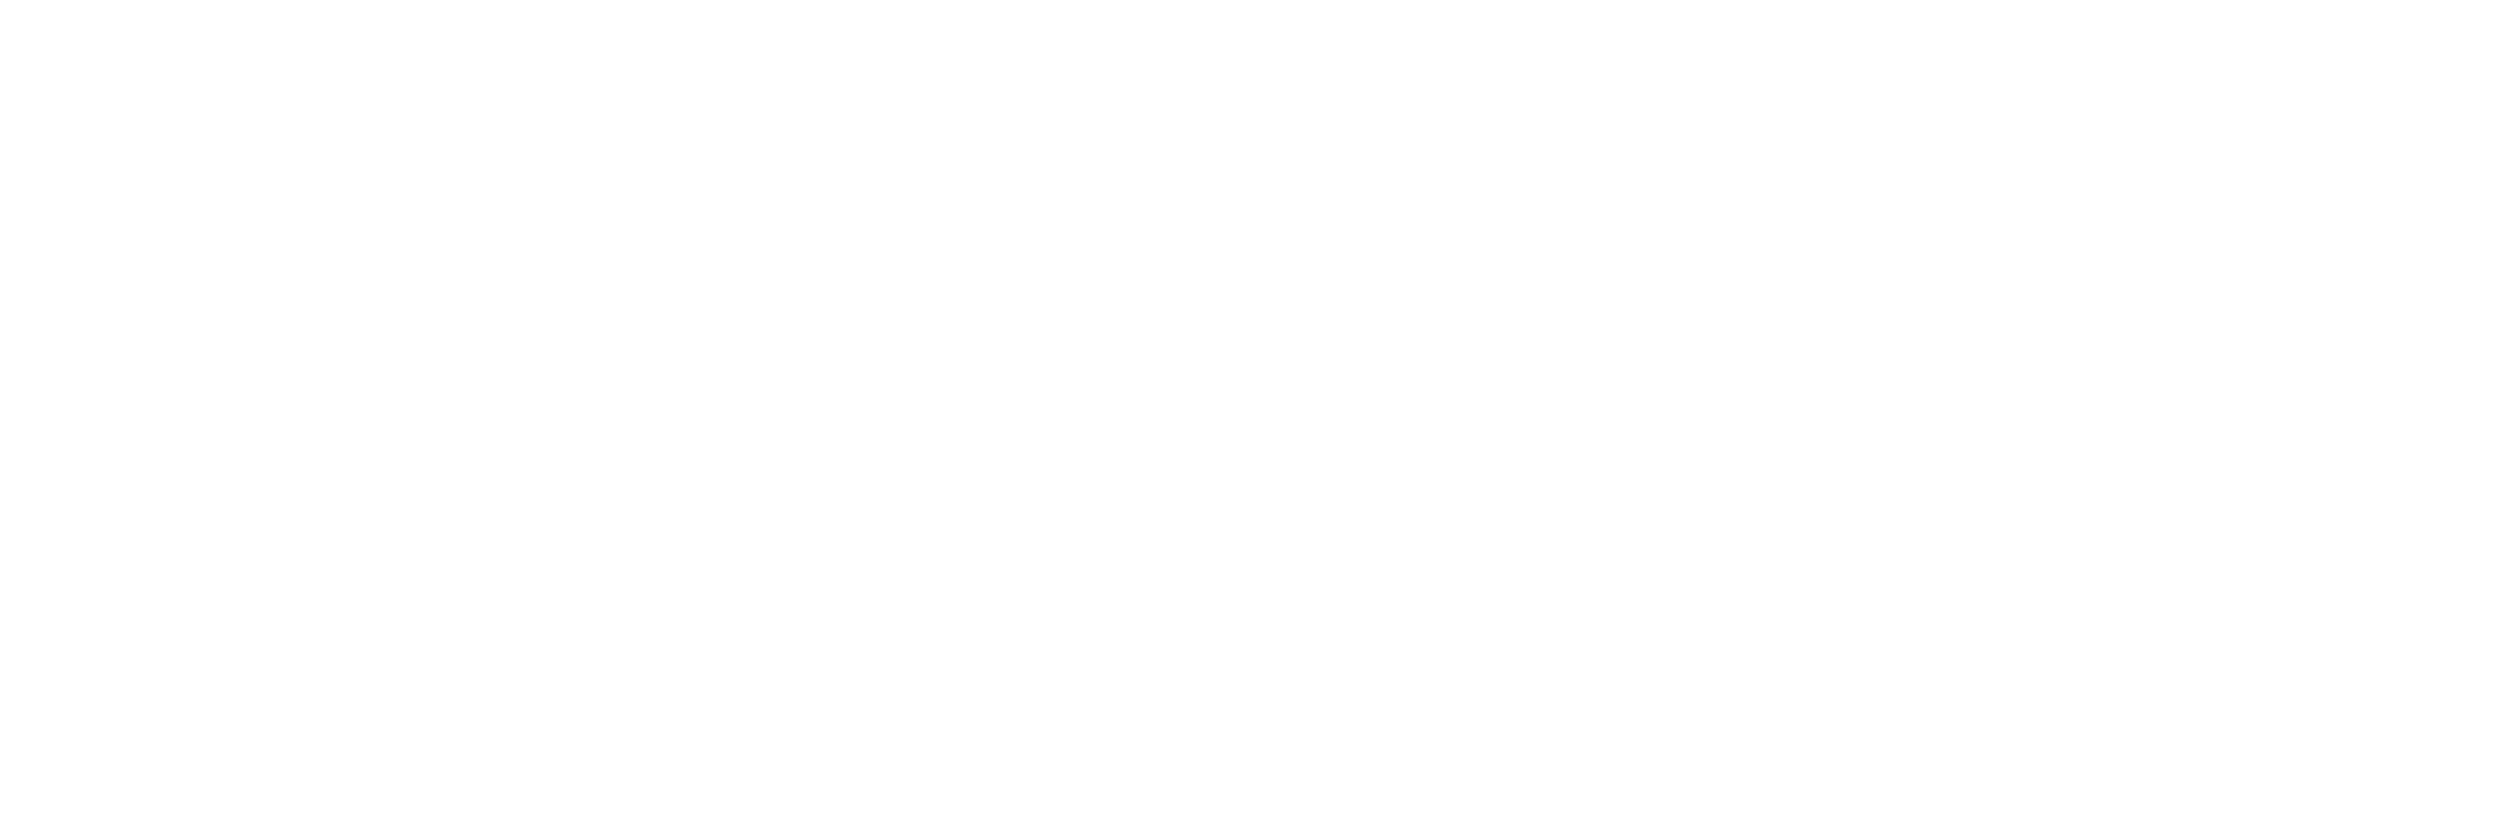 My Logo Full Name Visuals white.png